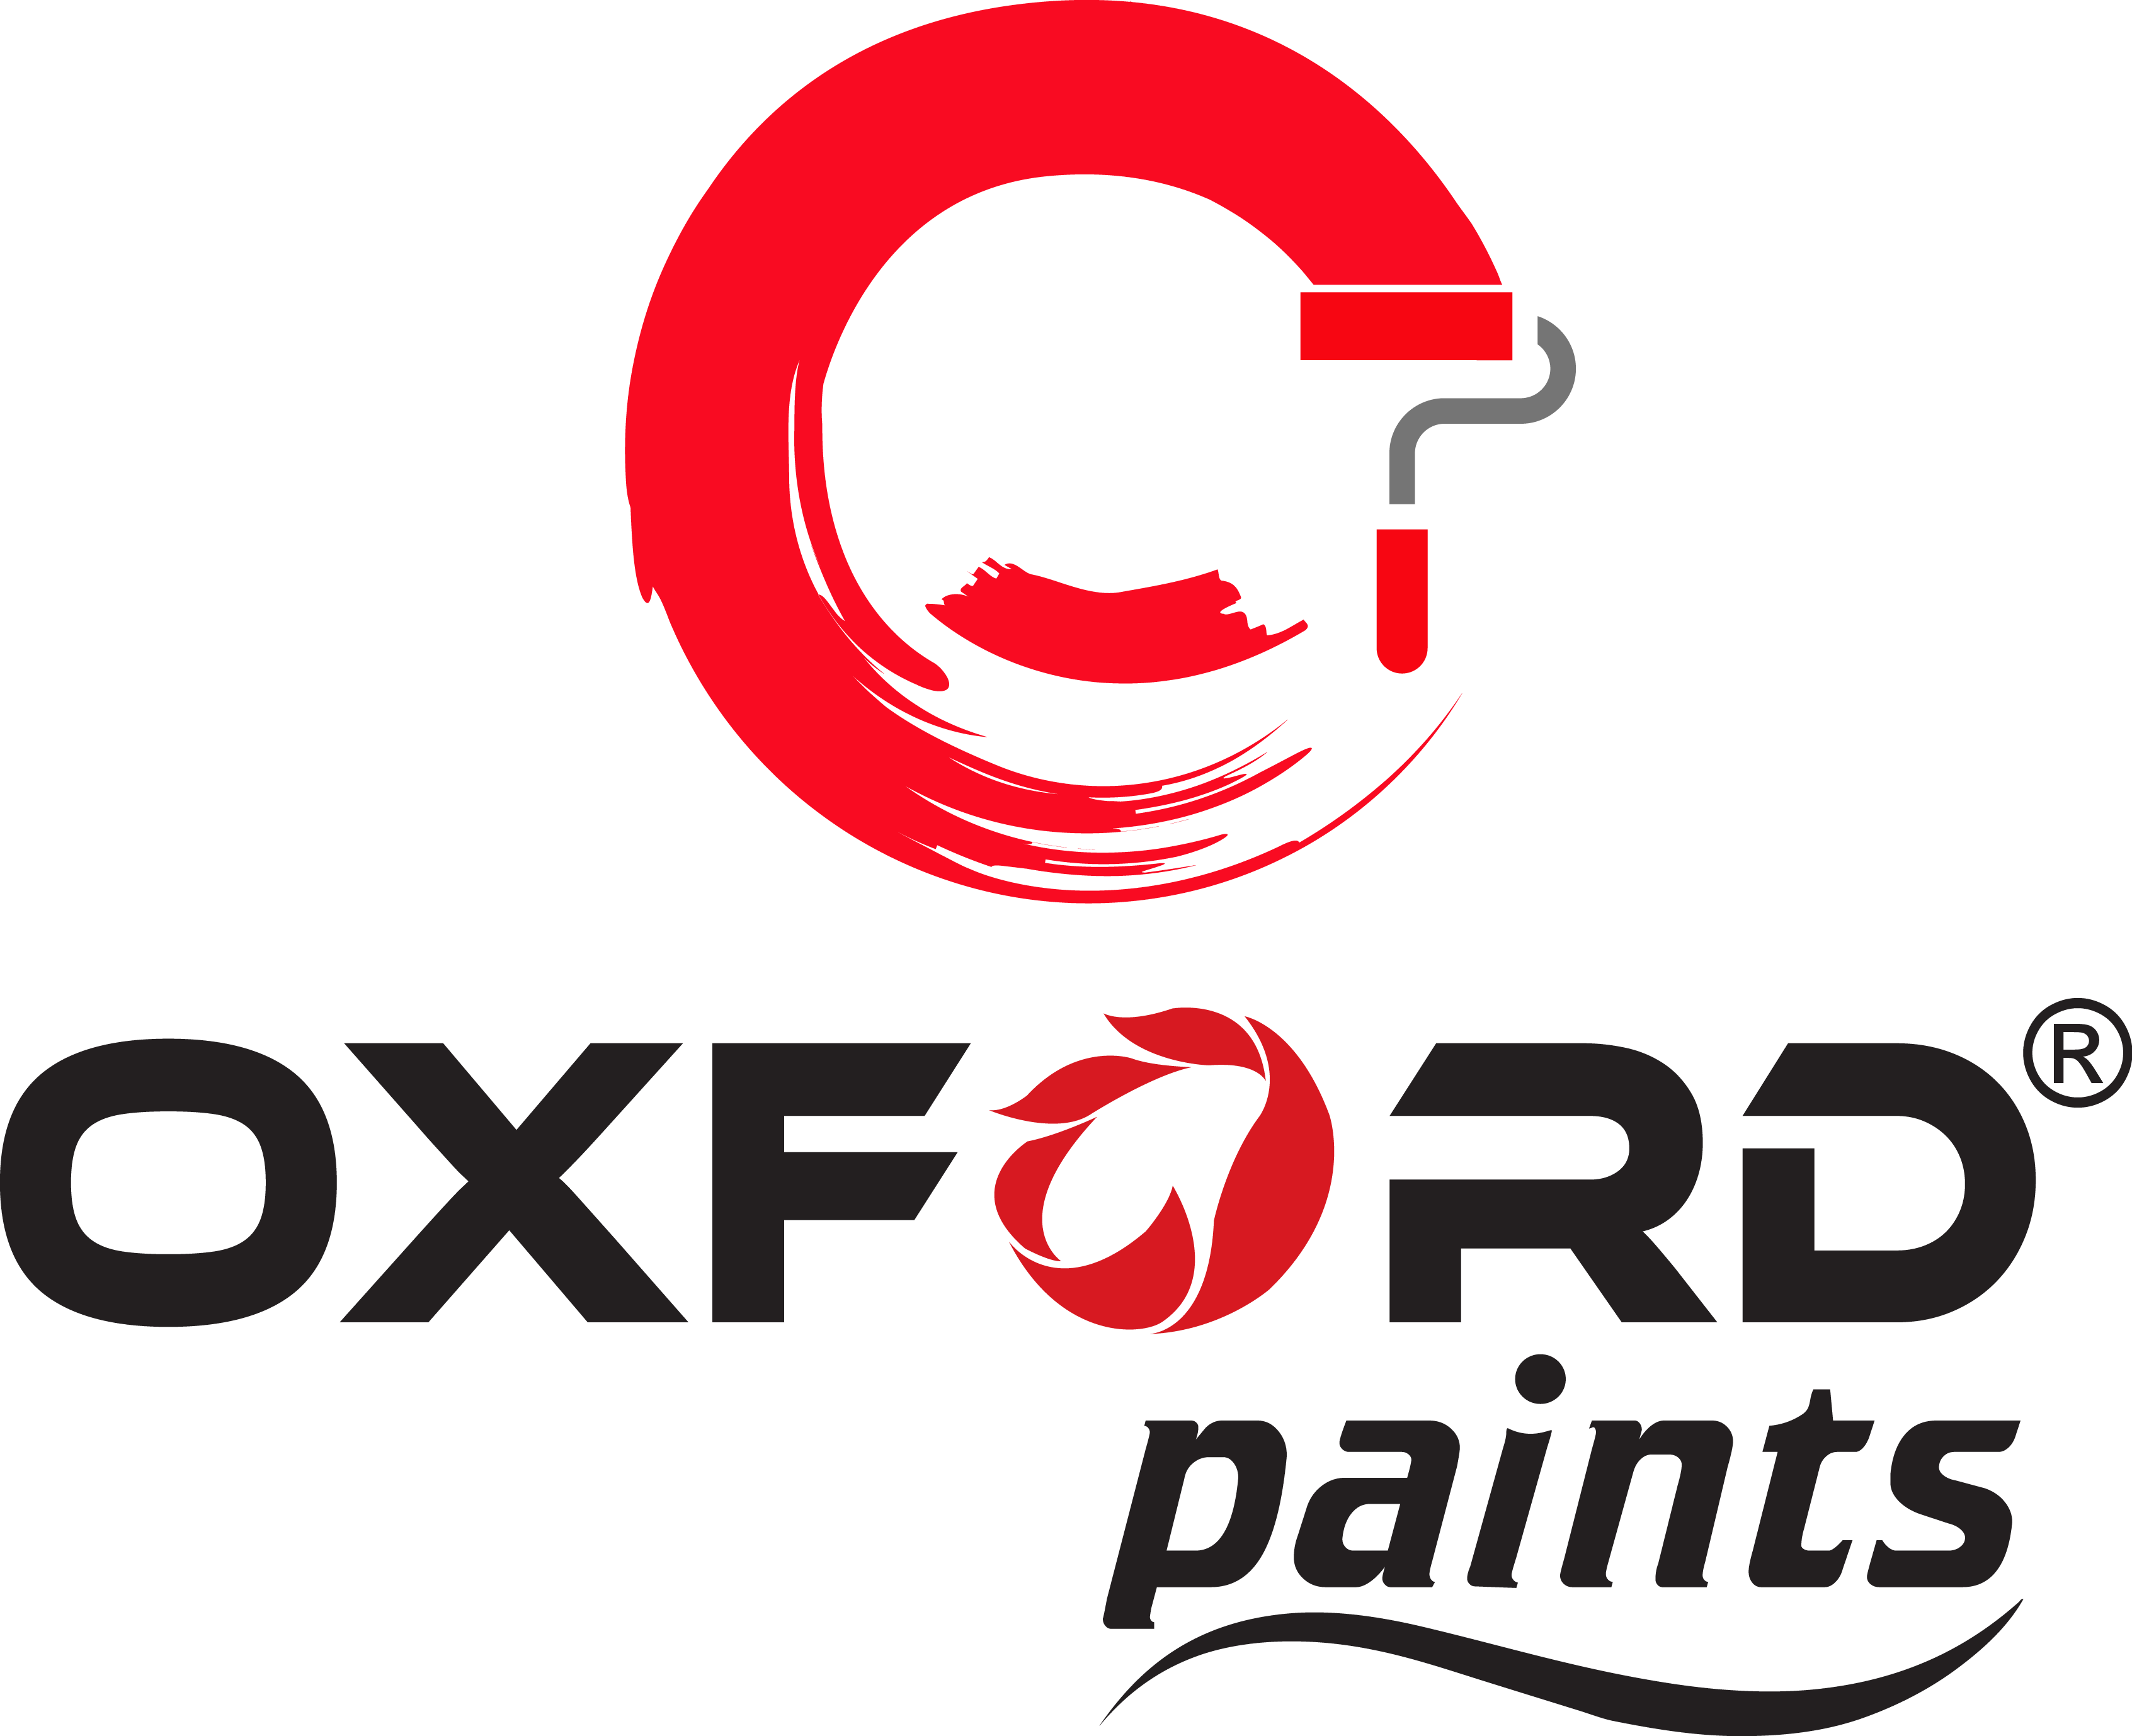 Oxford Paints